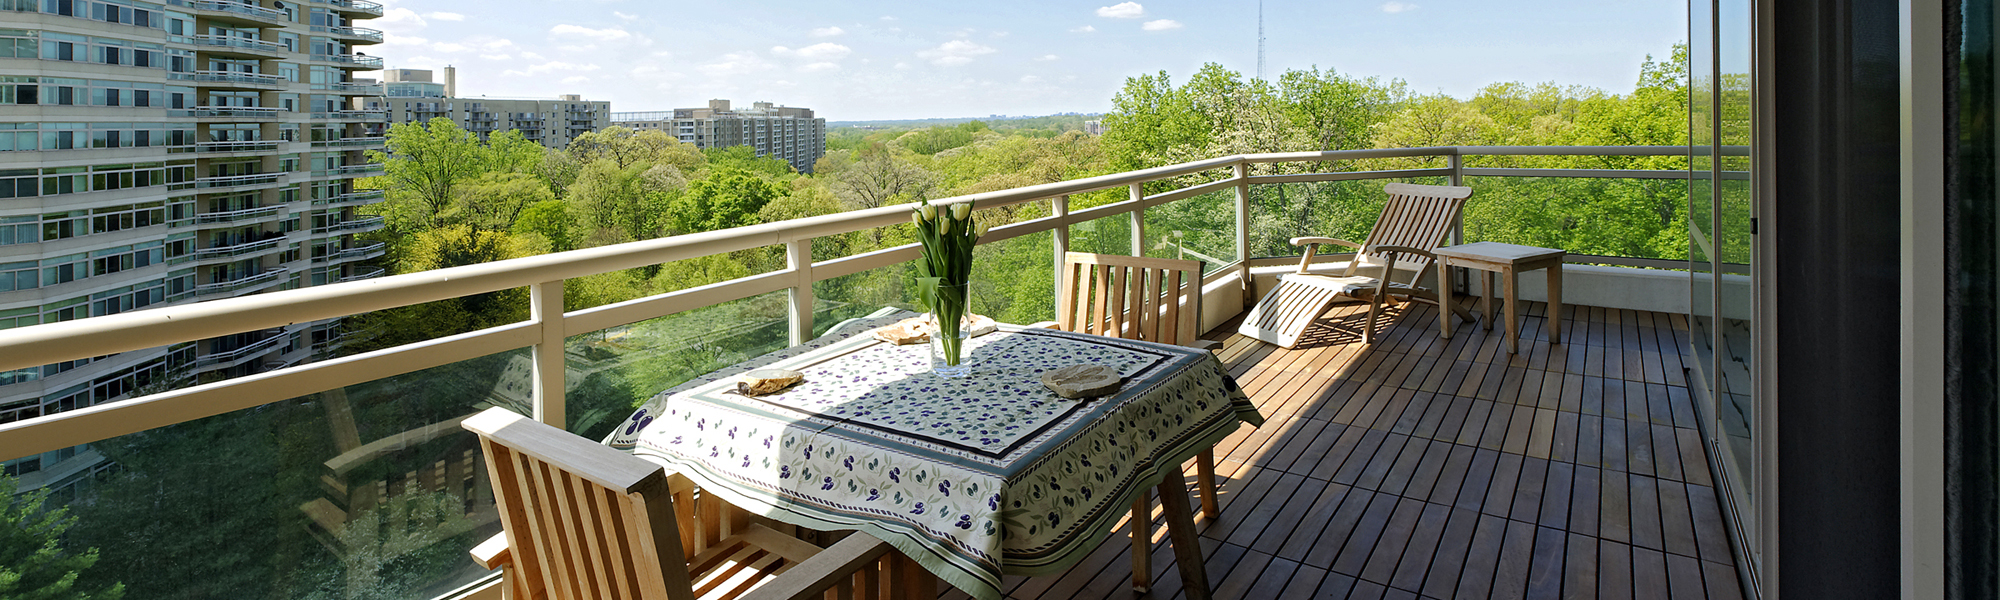 HIL_Washington-DC-Condo-Renovation-Balcony-HEADER